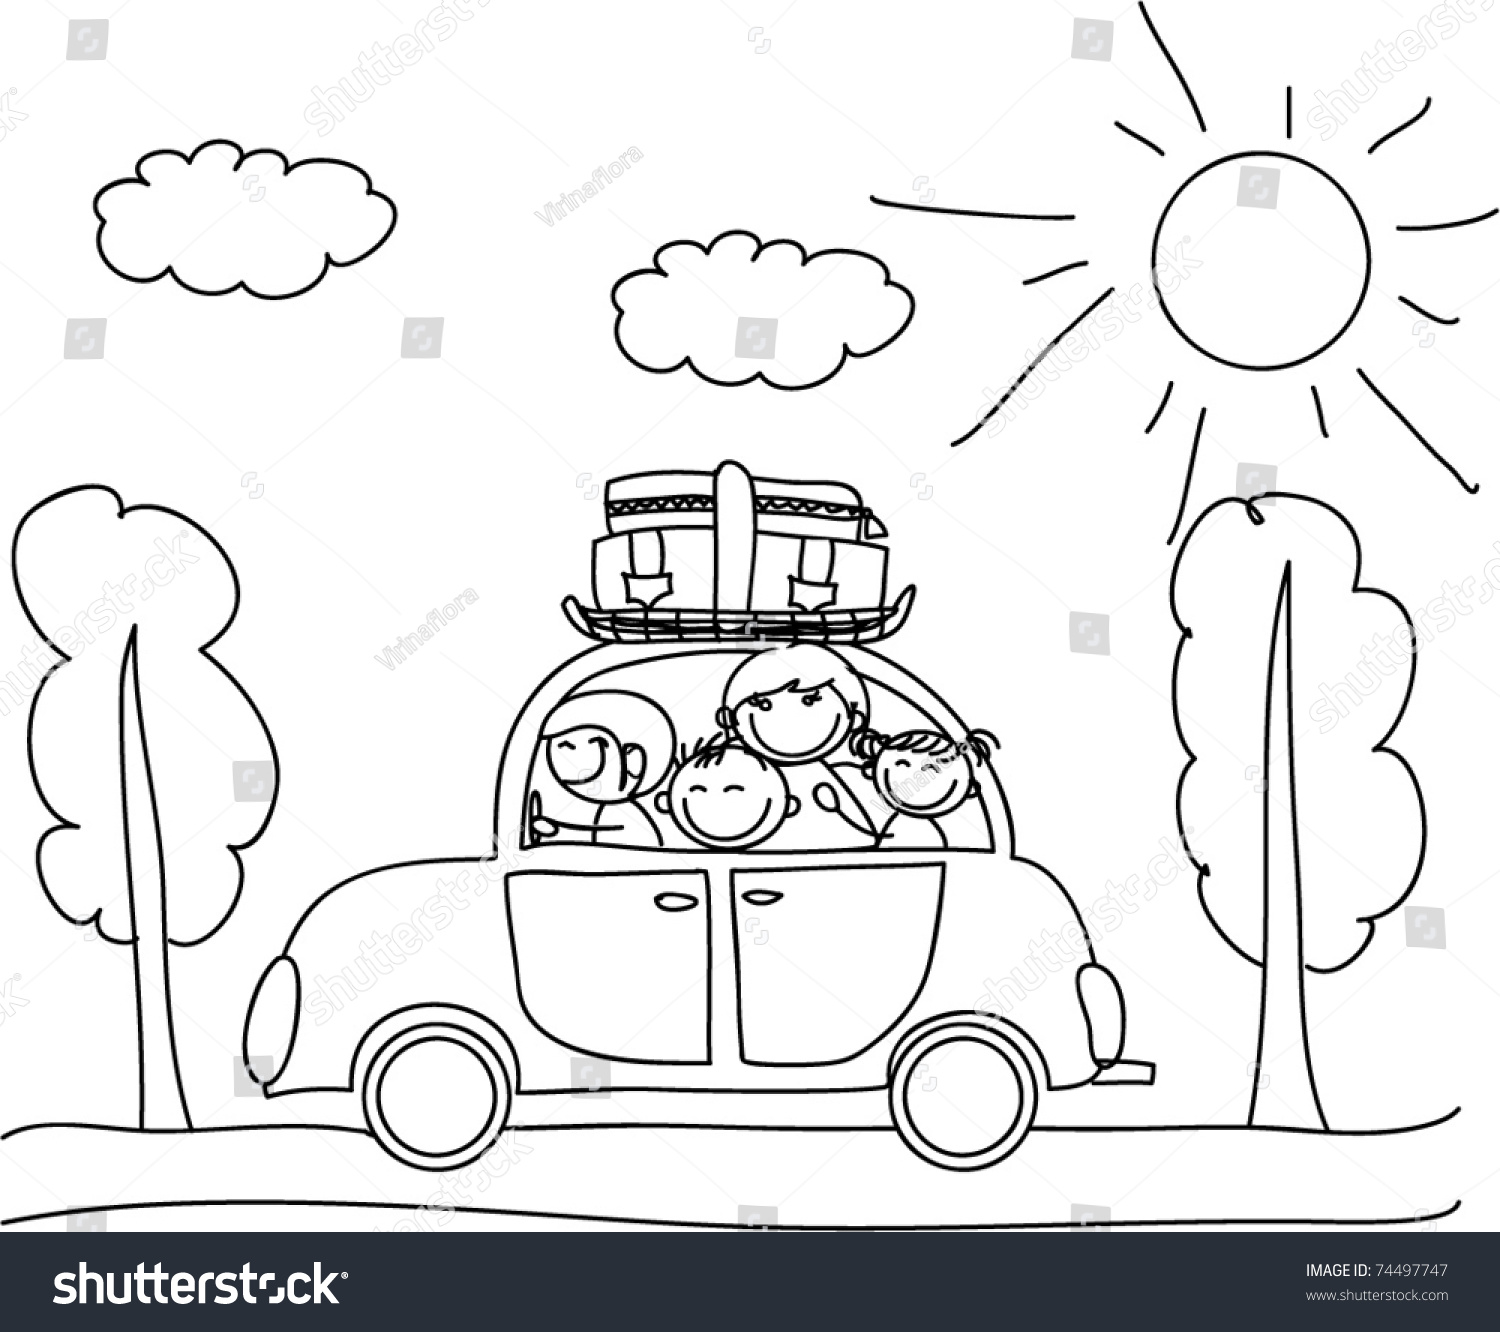 Coloring in the car - Happy Family Going On Holiday By Car Black And White Coloring